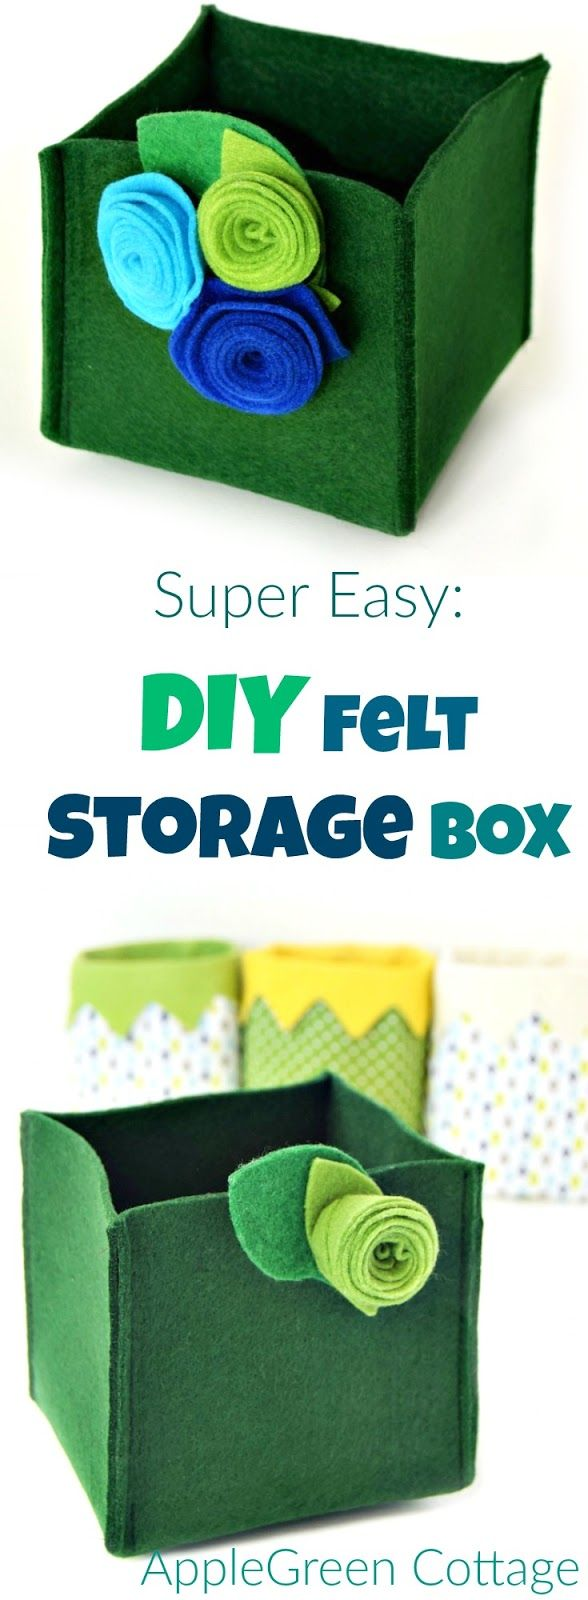 Quick Diy Storage Box - Super Easy! - AppleGreen Cottage